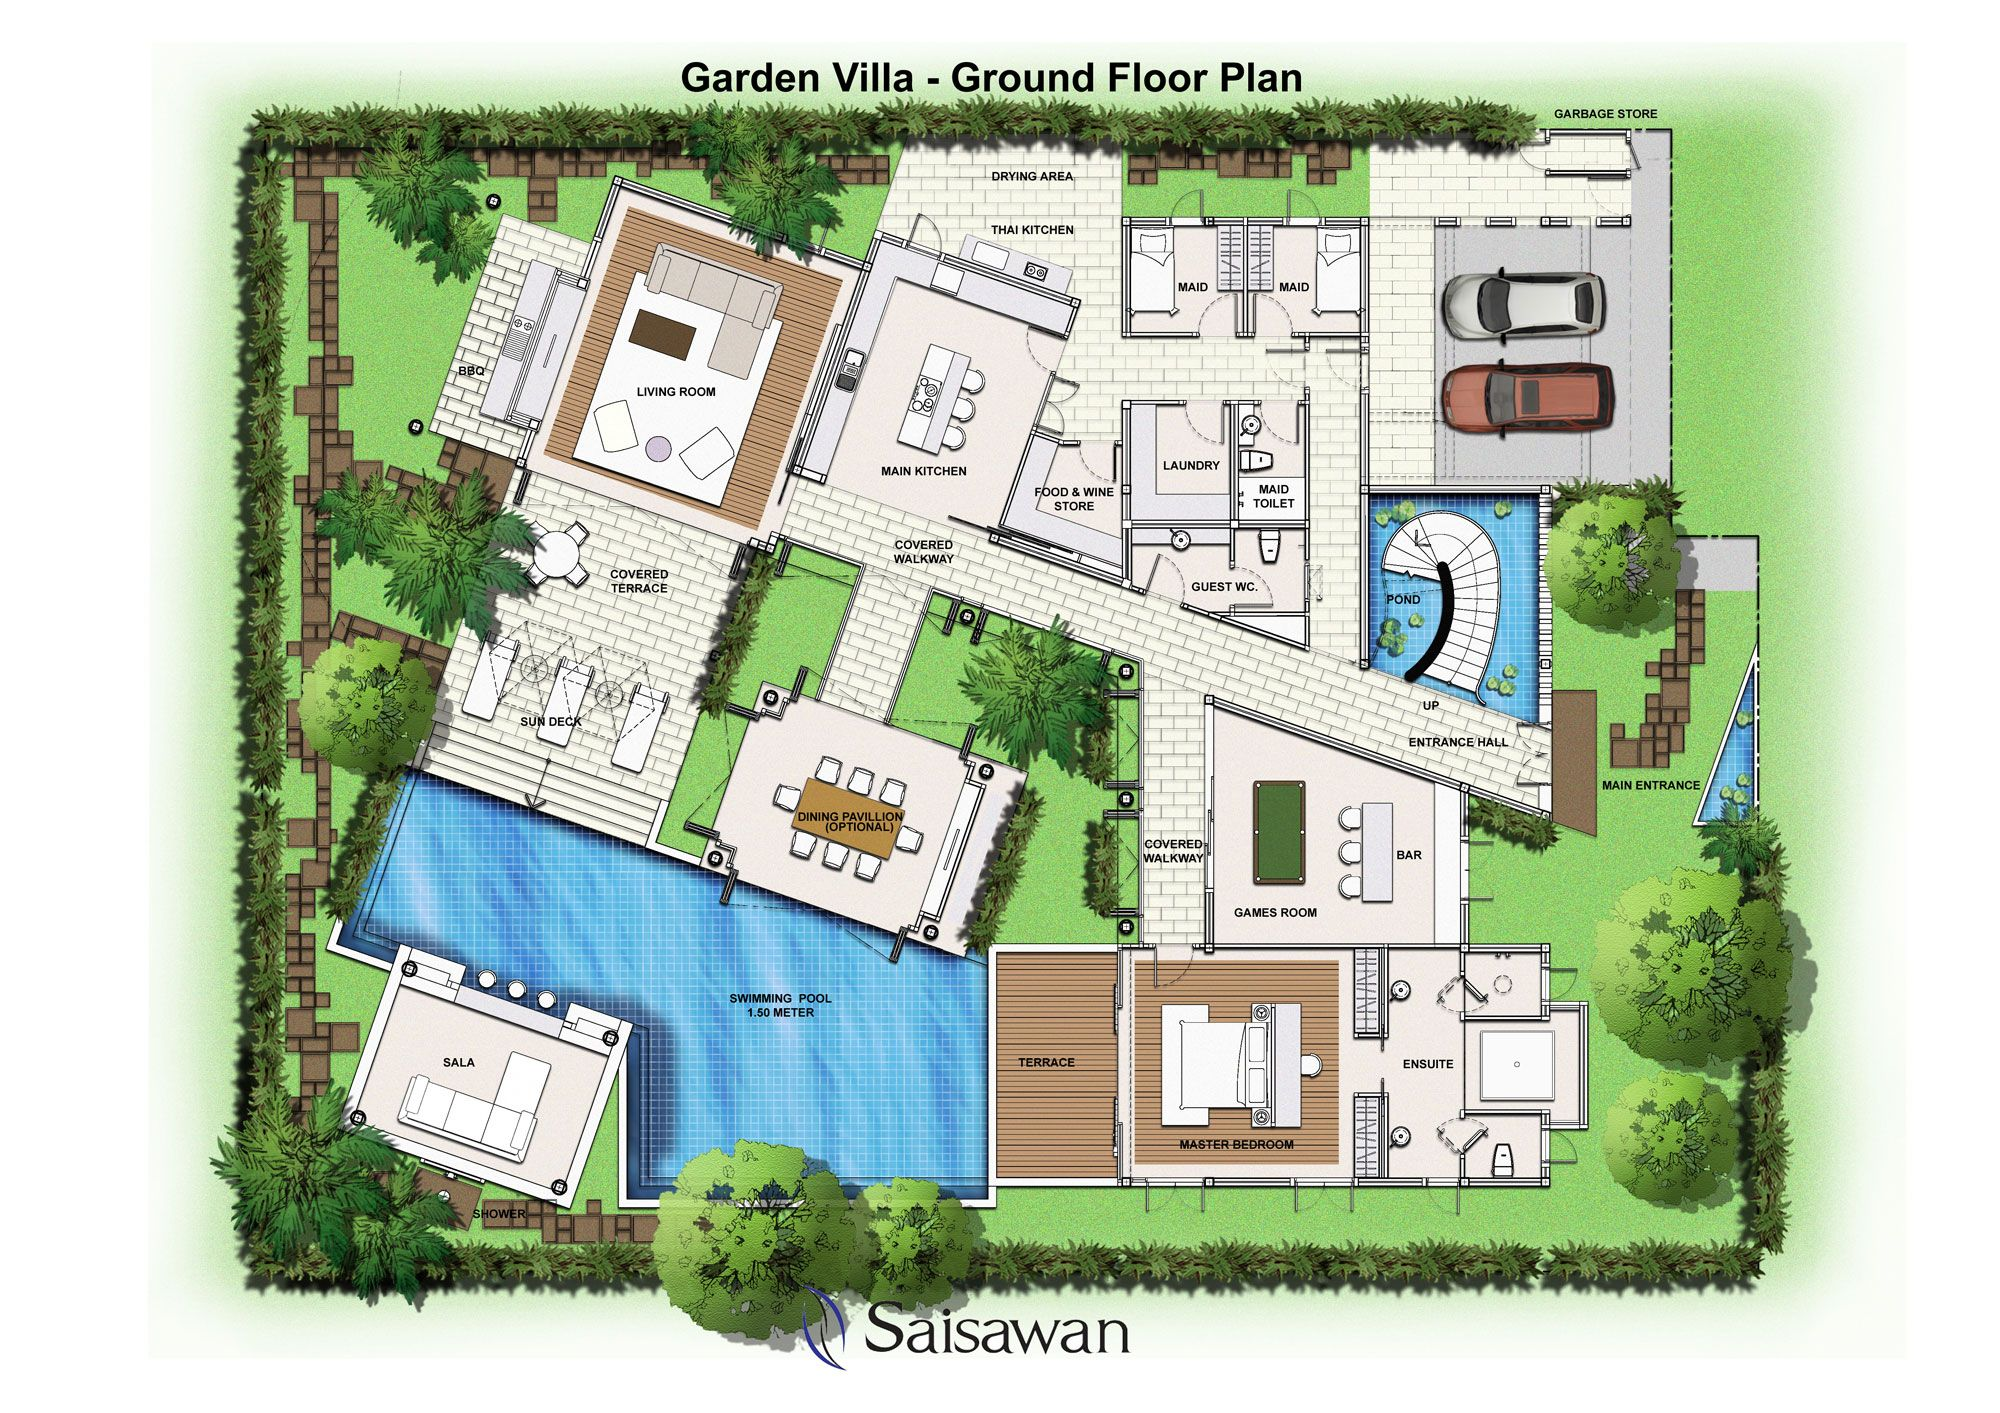 saisawan garden villas ground floor plan house plans On garden home house plans